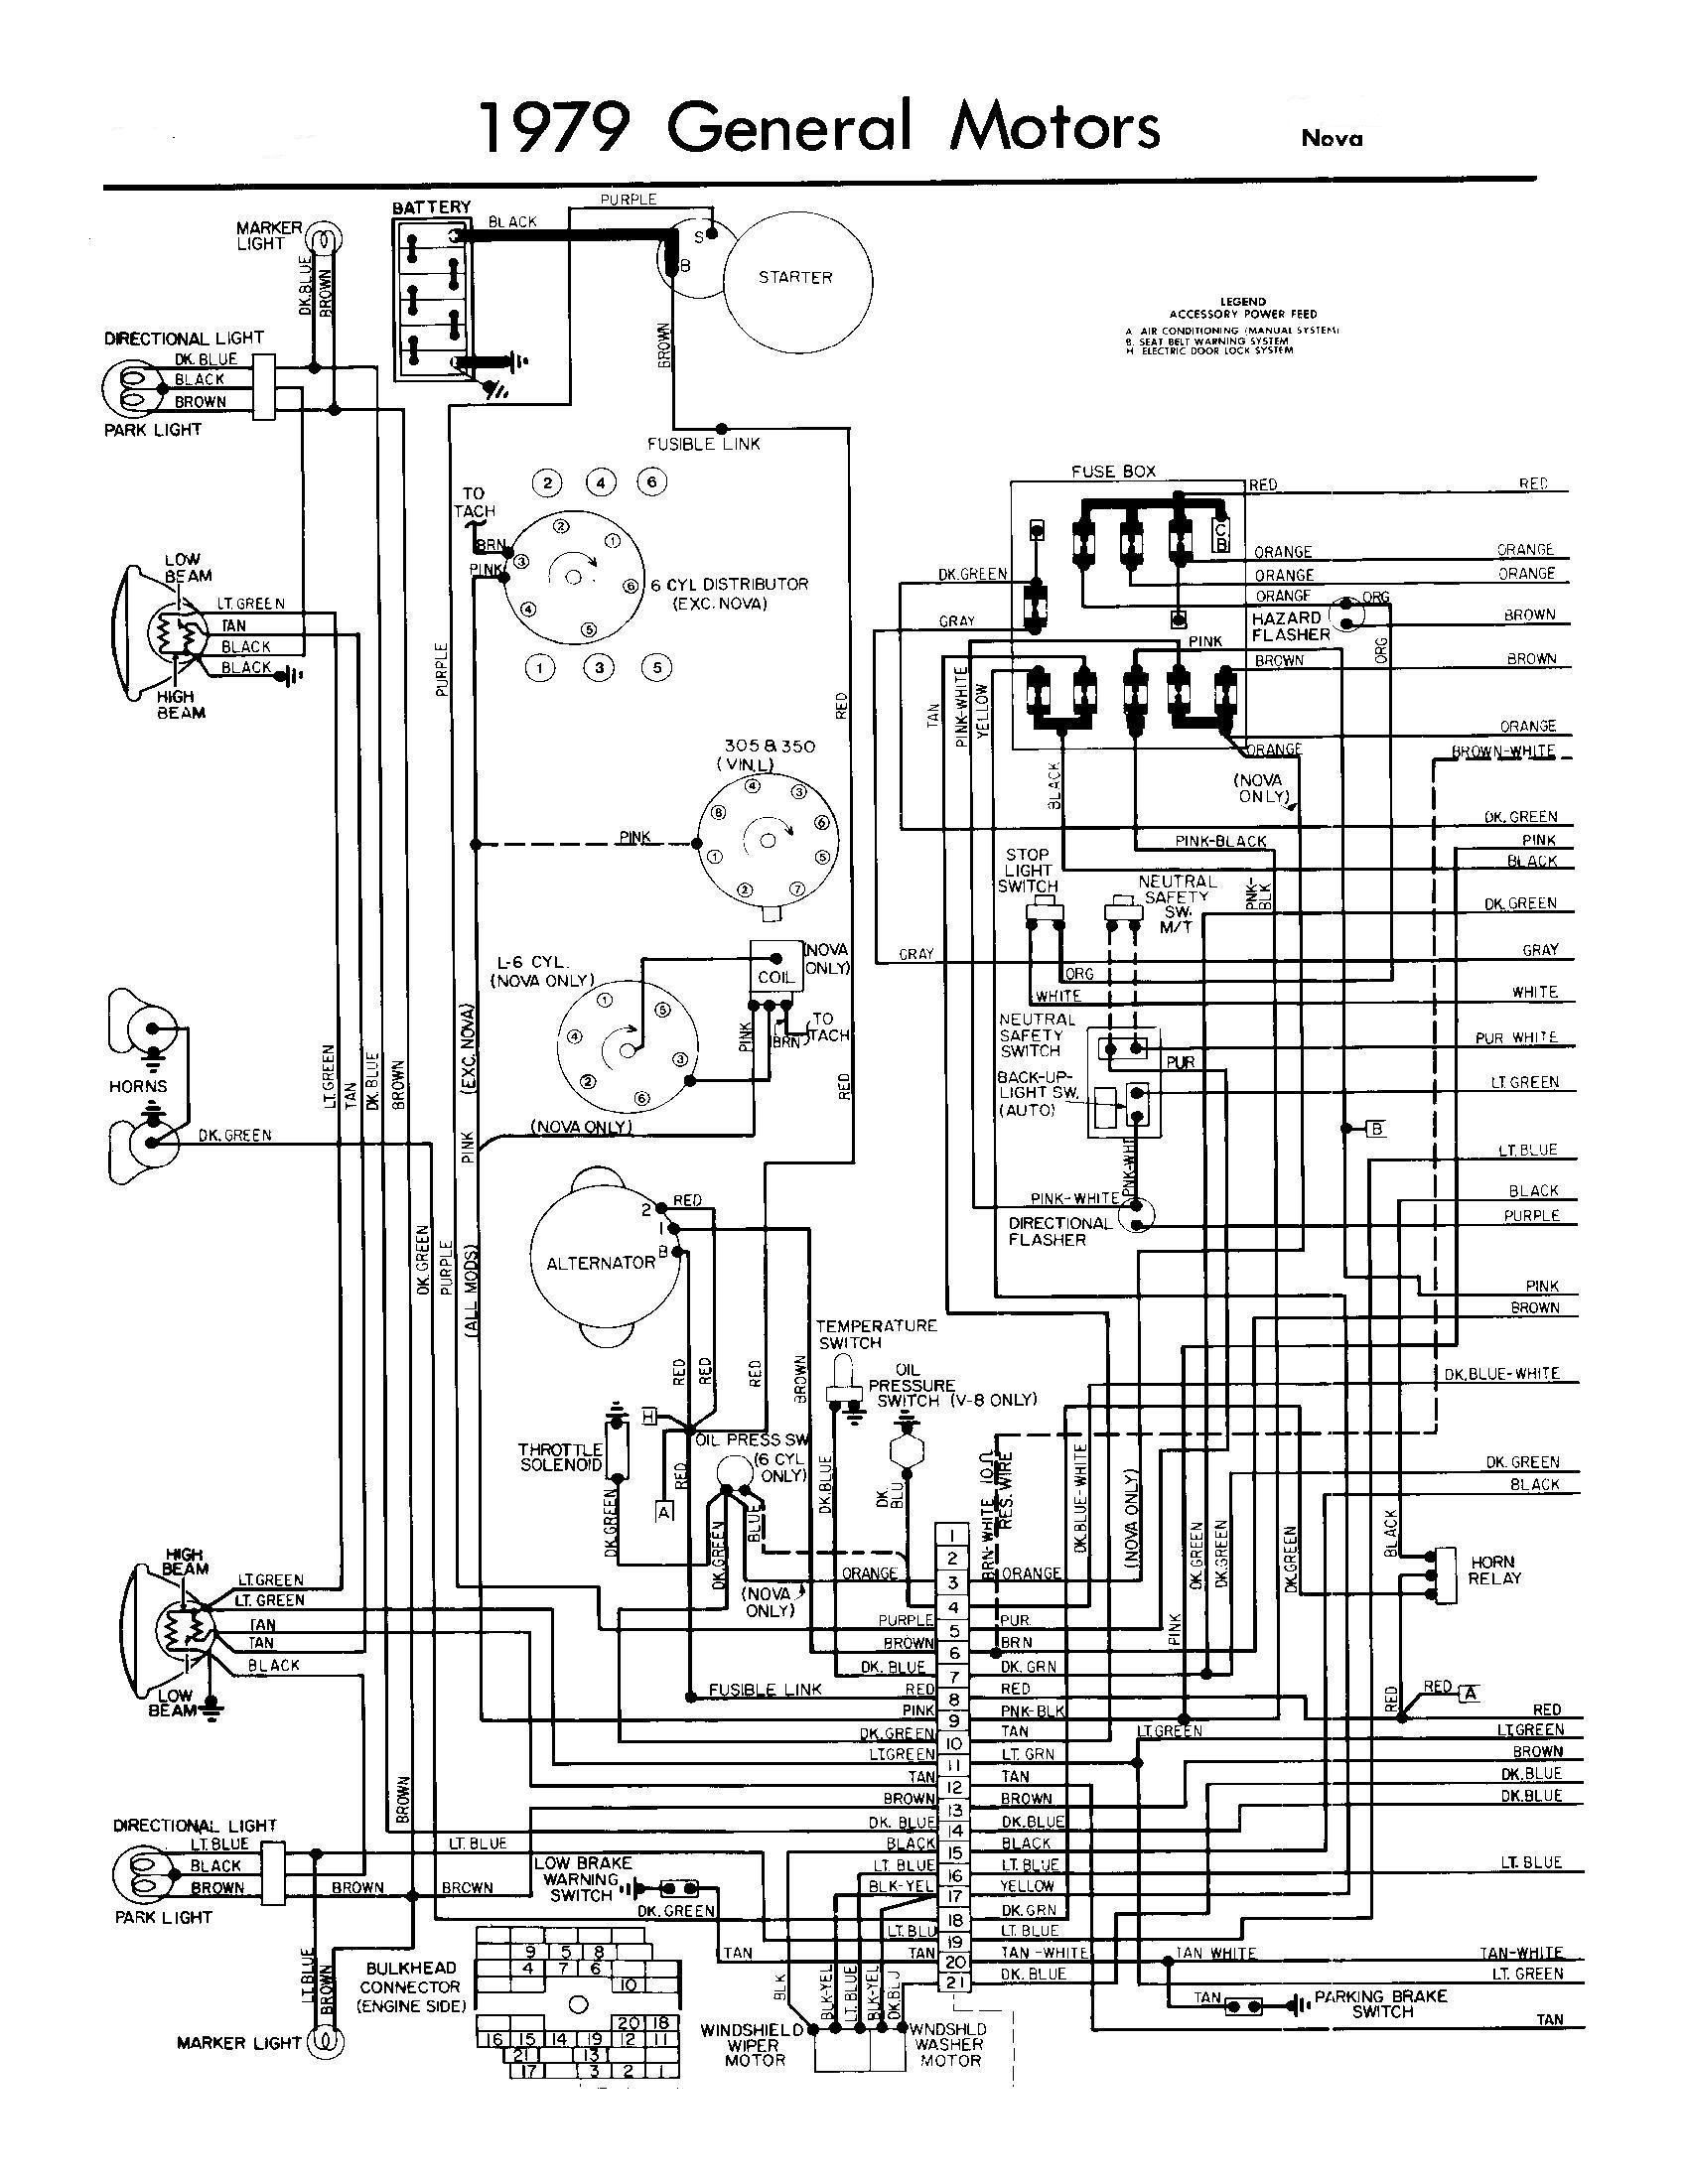 1973 chevy c10 fuse box data wiring diagrams u2022 rh naopak co 82 Chevy Truck Wiring Diagram 93 Chevy Truck Wiring Diagram